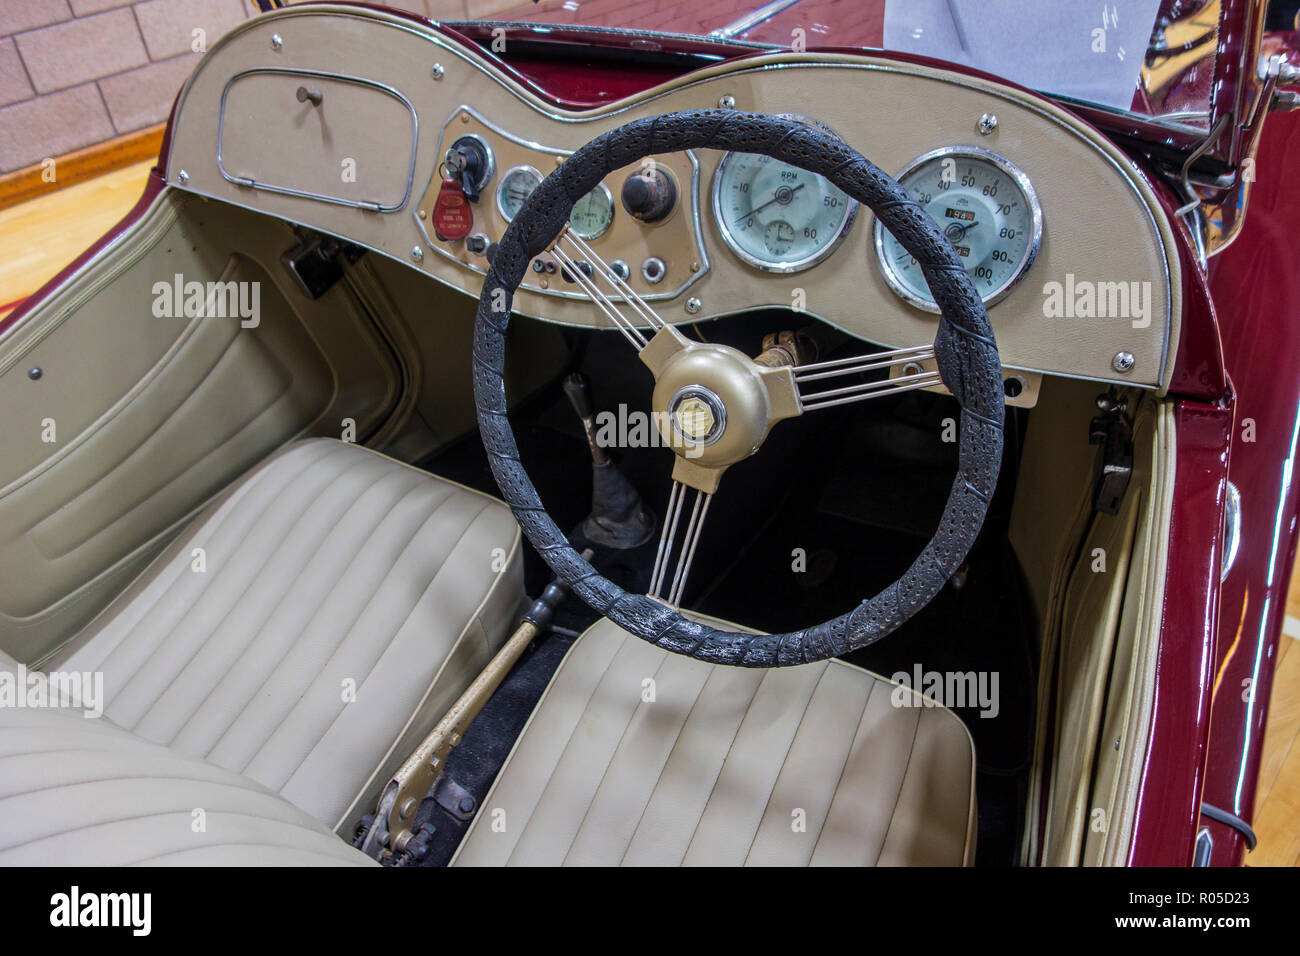 Steering wheel and dashboard of a classic British MG TD 1953 sports car - Stock Image